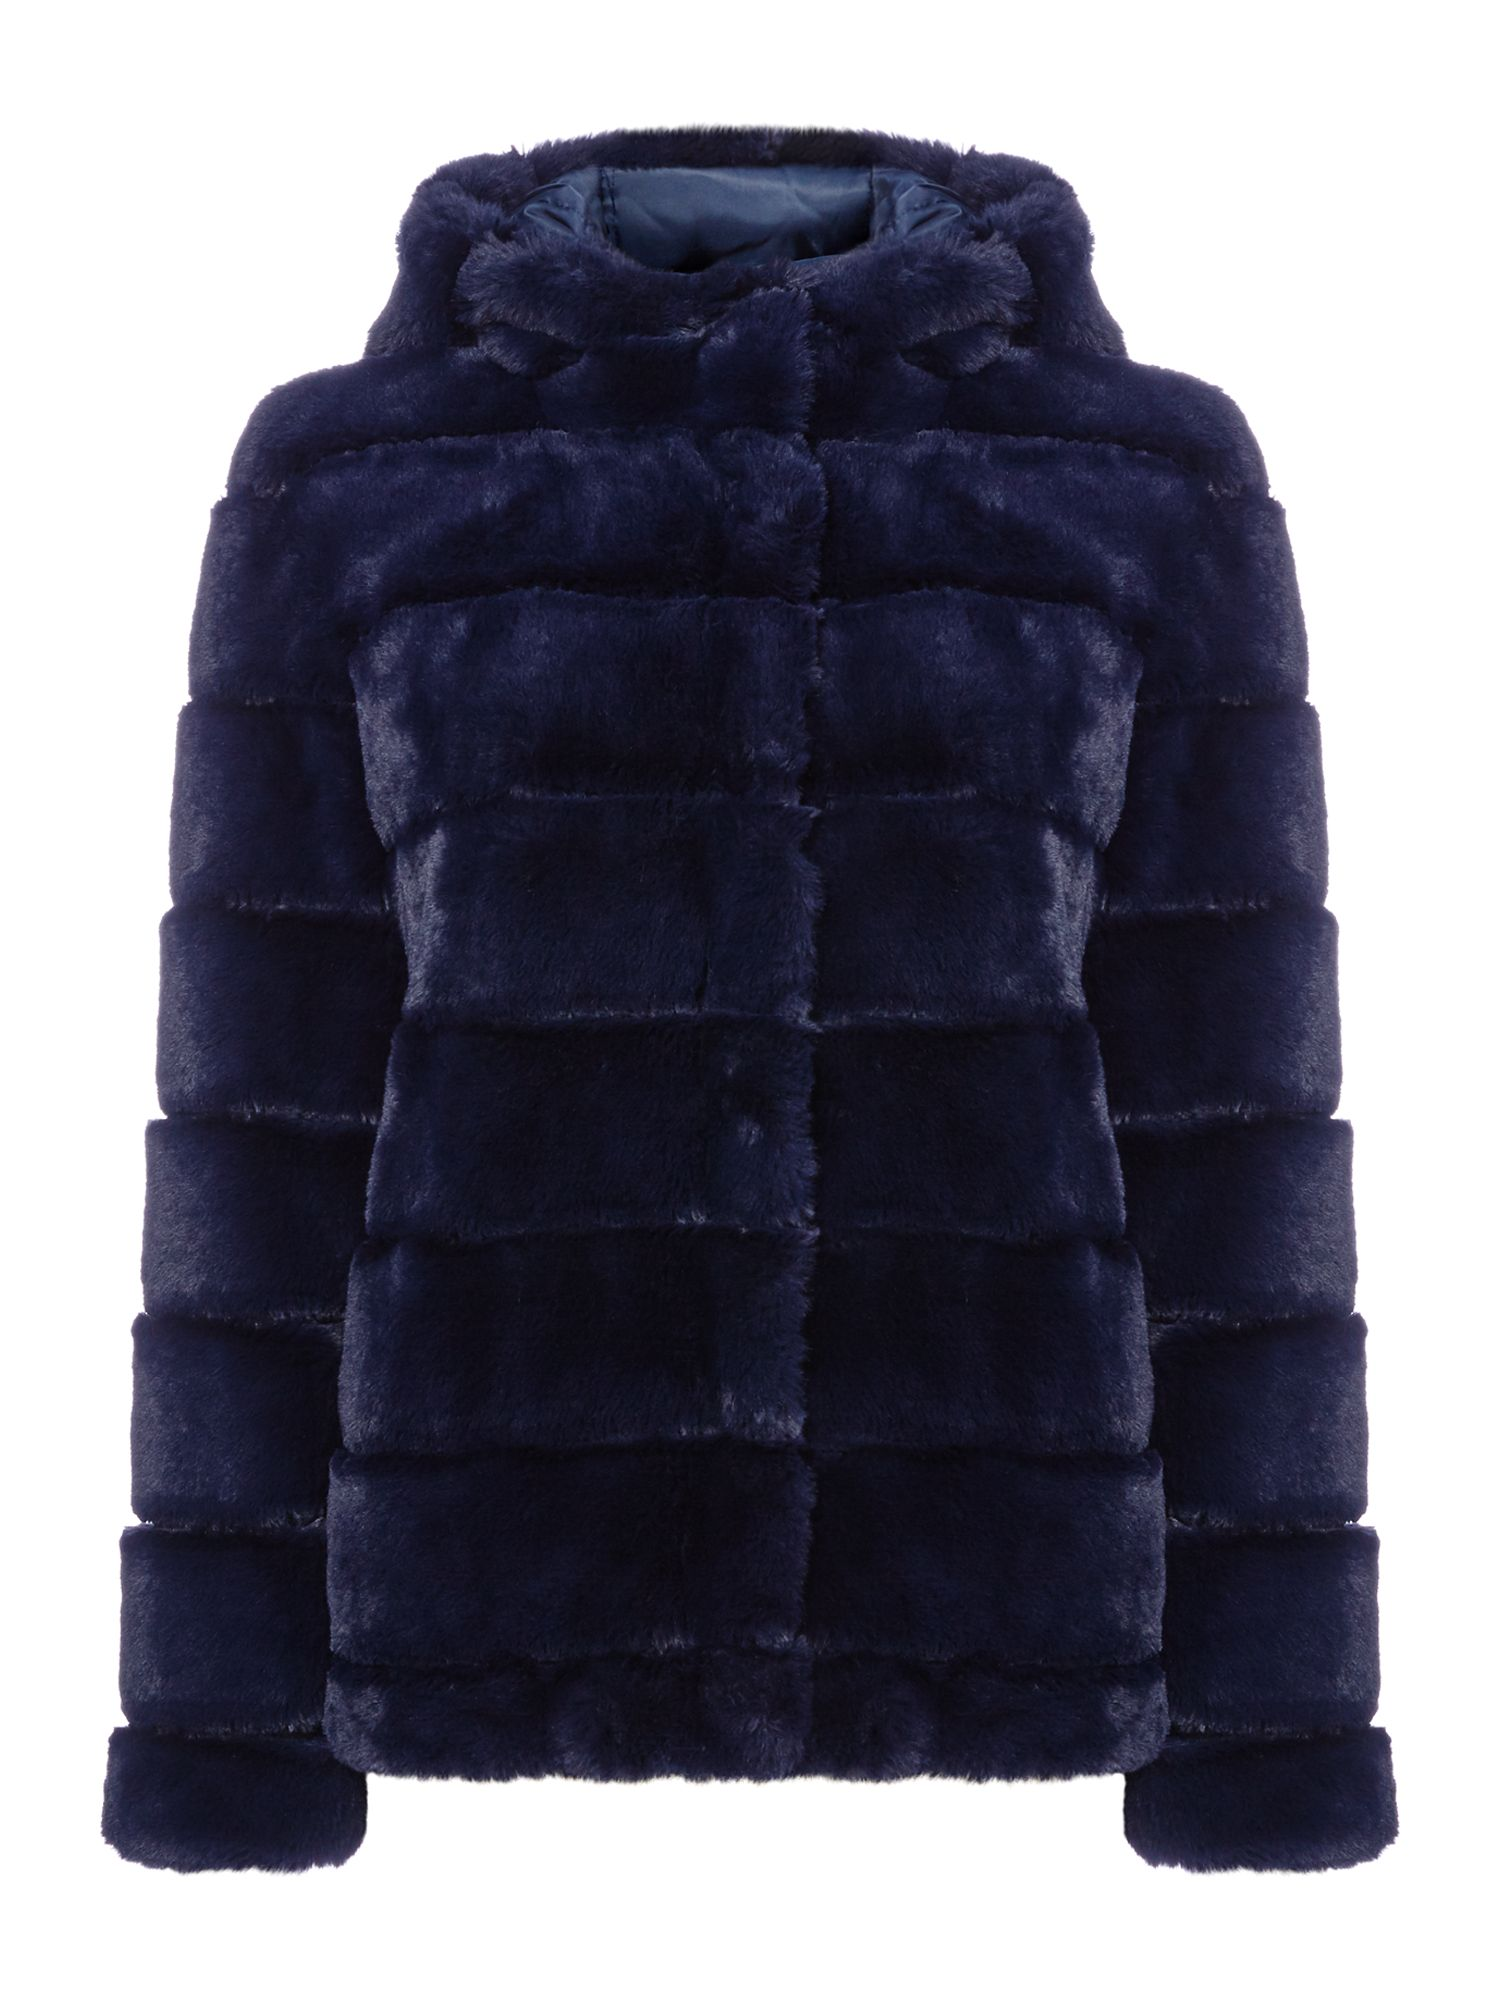 Samsoe and Samsoe Hooded teddy bear jacket, Sapphire Blue